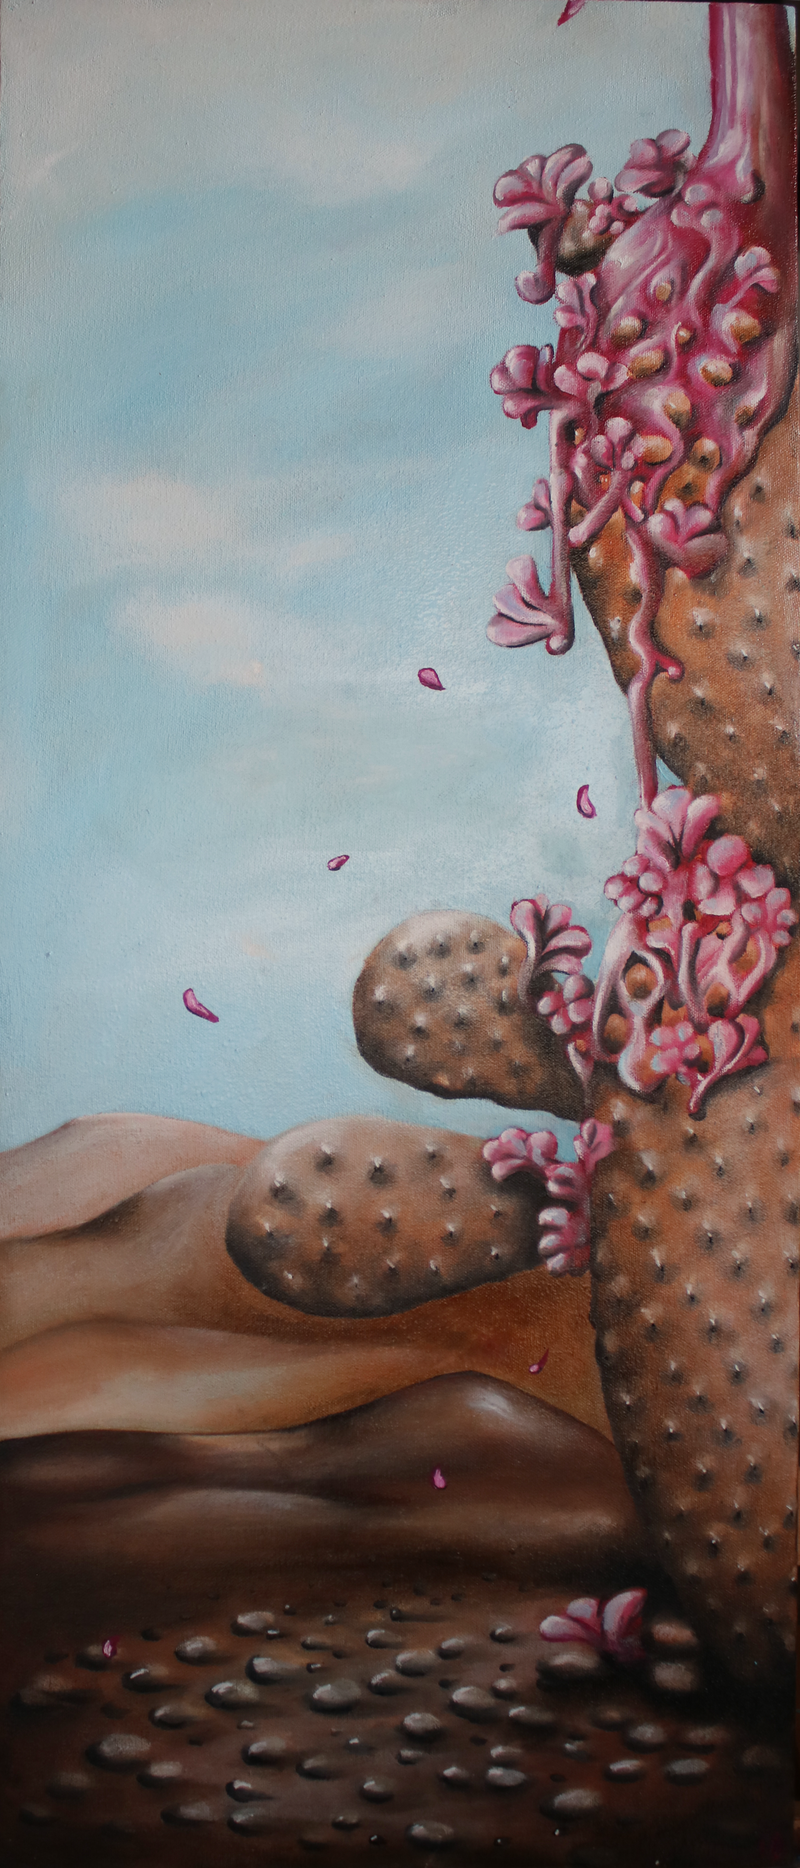 (CreativeWork) Special Edition by Vanessa Stefanova. Oil Paint. Shop online at Bluethumb.